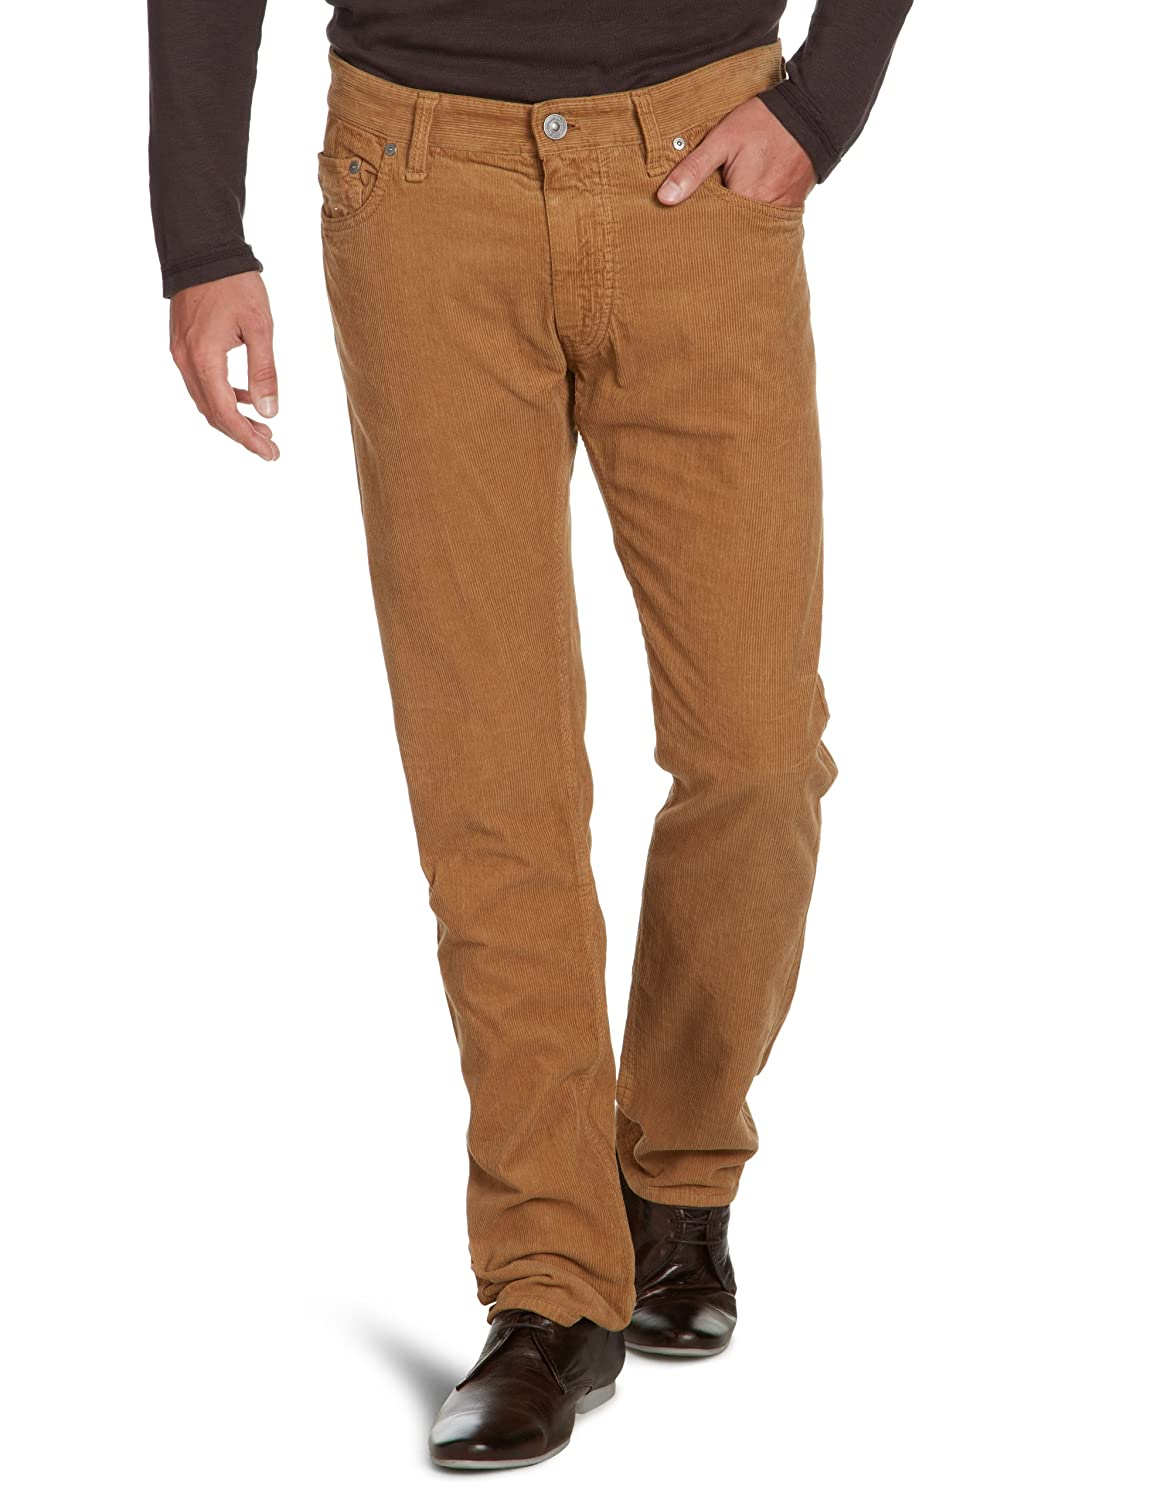 Marc O'Polo Men's Trousers